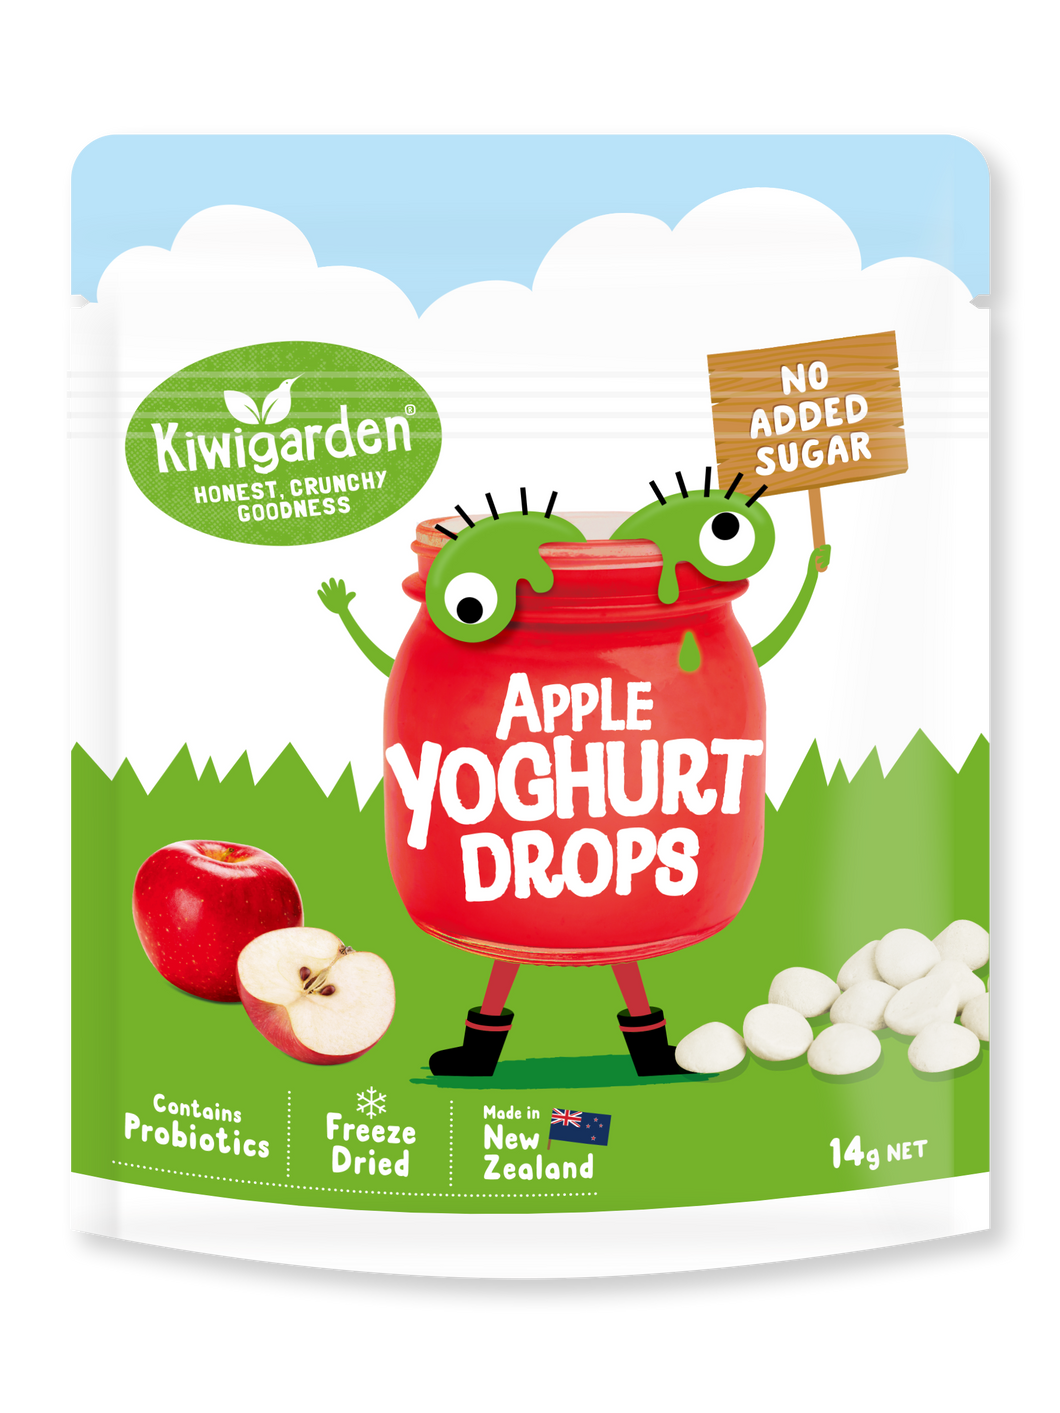 Apple Yoghurt Drops 14g - No added sugar